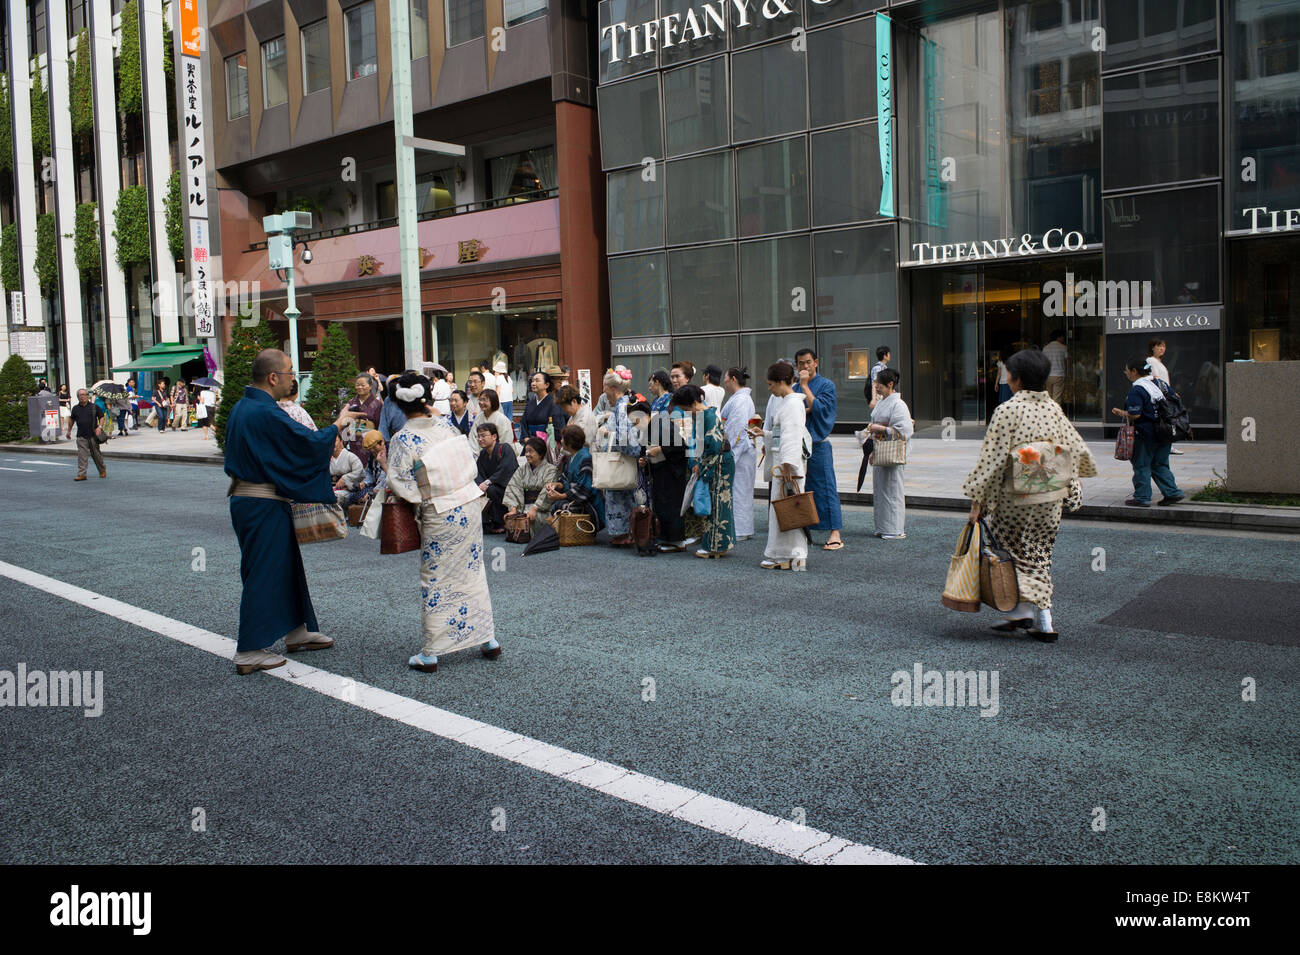 342f9856f Japanese in traditional costume posing outside Tiffany & Co, Ginza, Tokyo,  Japan.